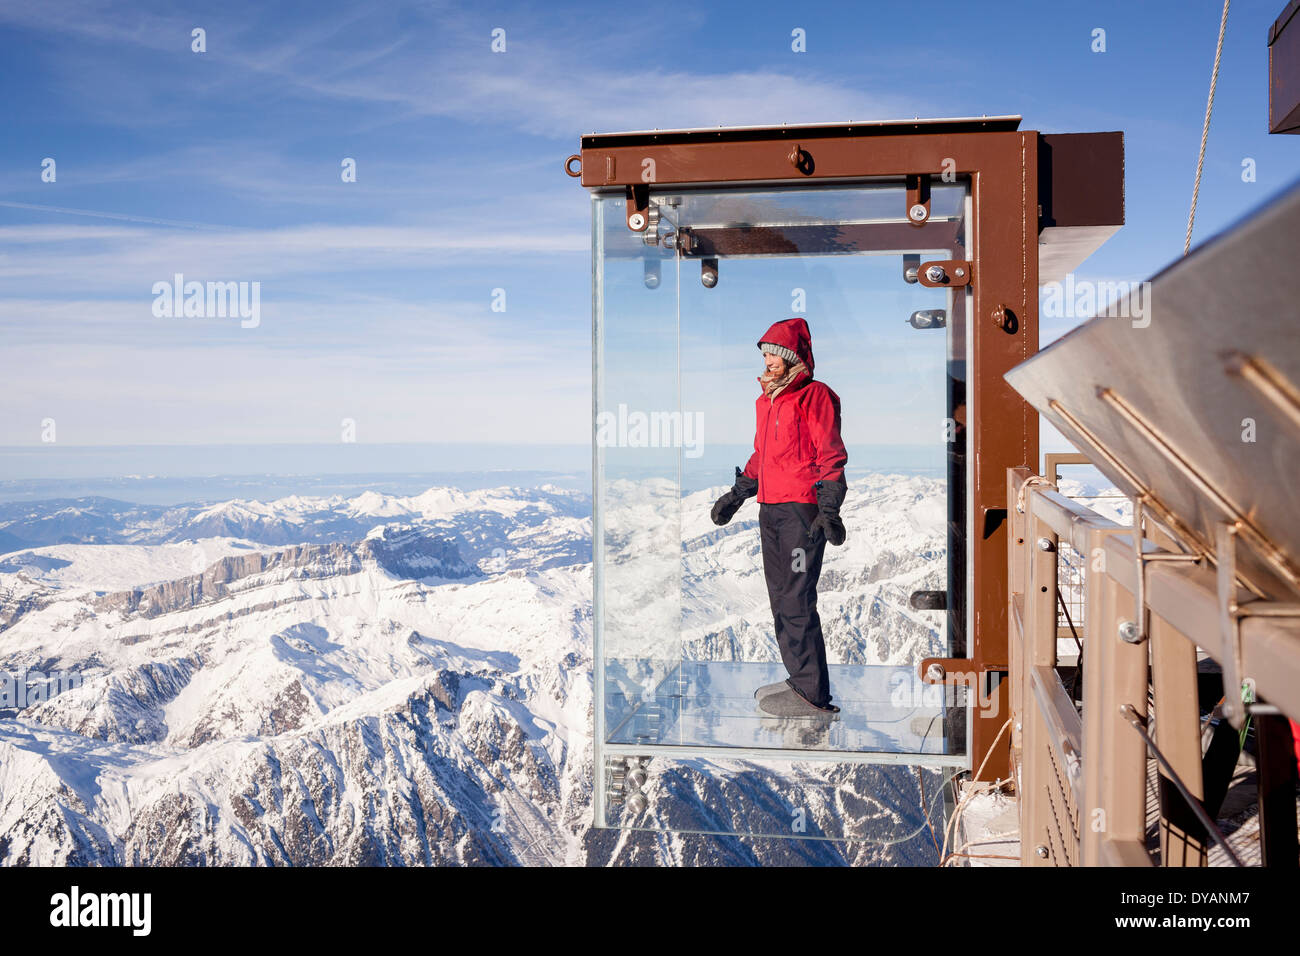 A tourist stands in the 'Step into the Void' glass box on the Aiguille Du Midi (3842m) mountain top above Chamonix Mont-Blanc - Stock Image